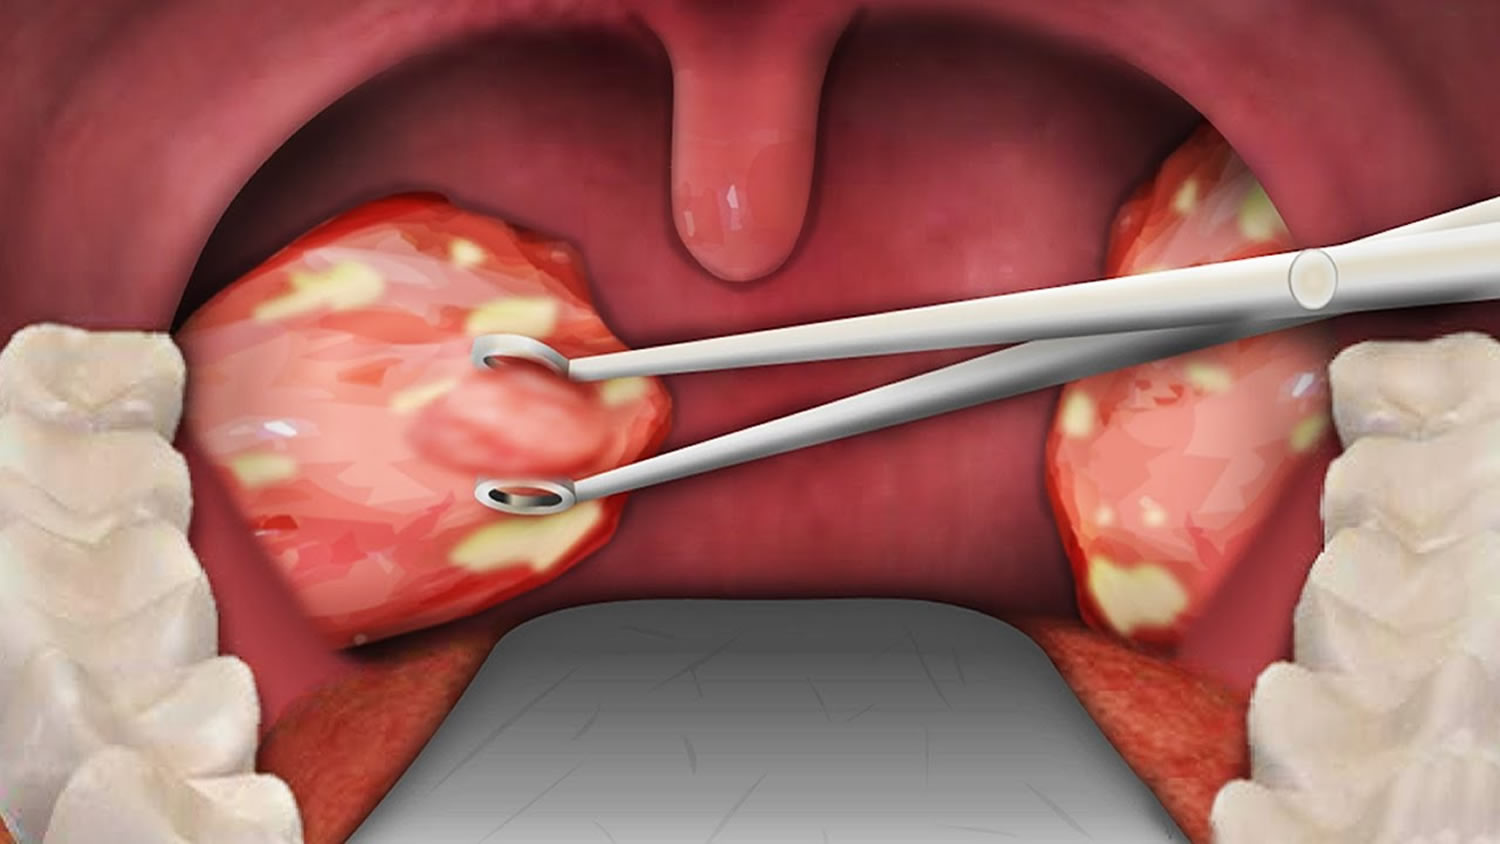 Tonsillectomy - Indications, Recovery Time, Cost, And -5540